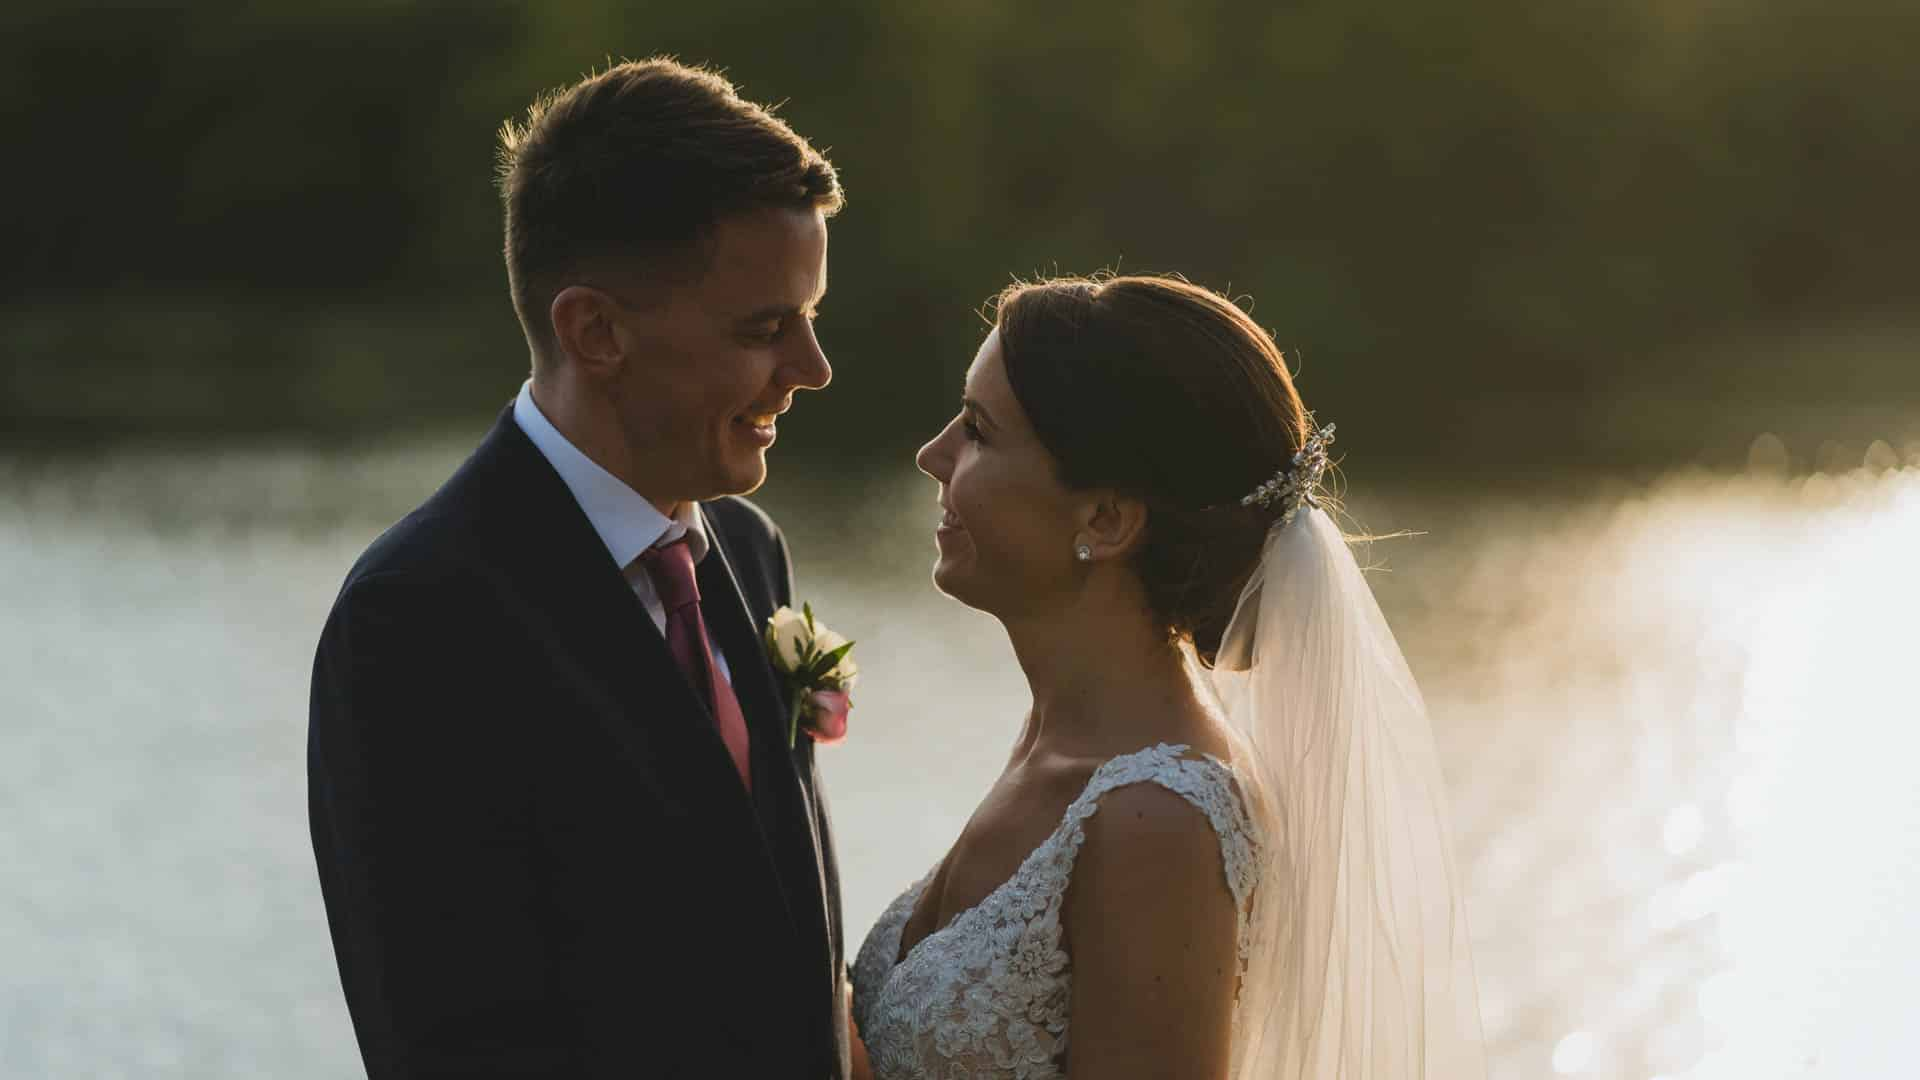 Bride and groom during their Hensol castle wedding photography